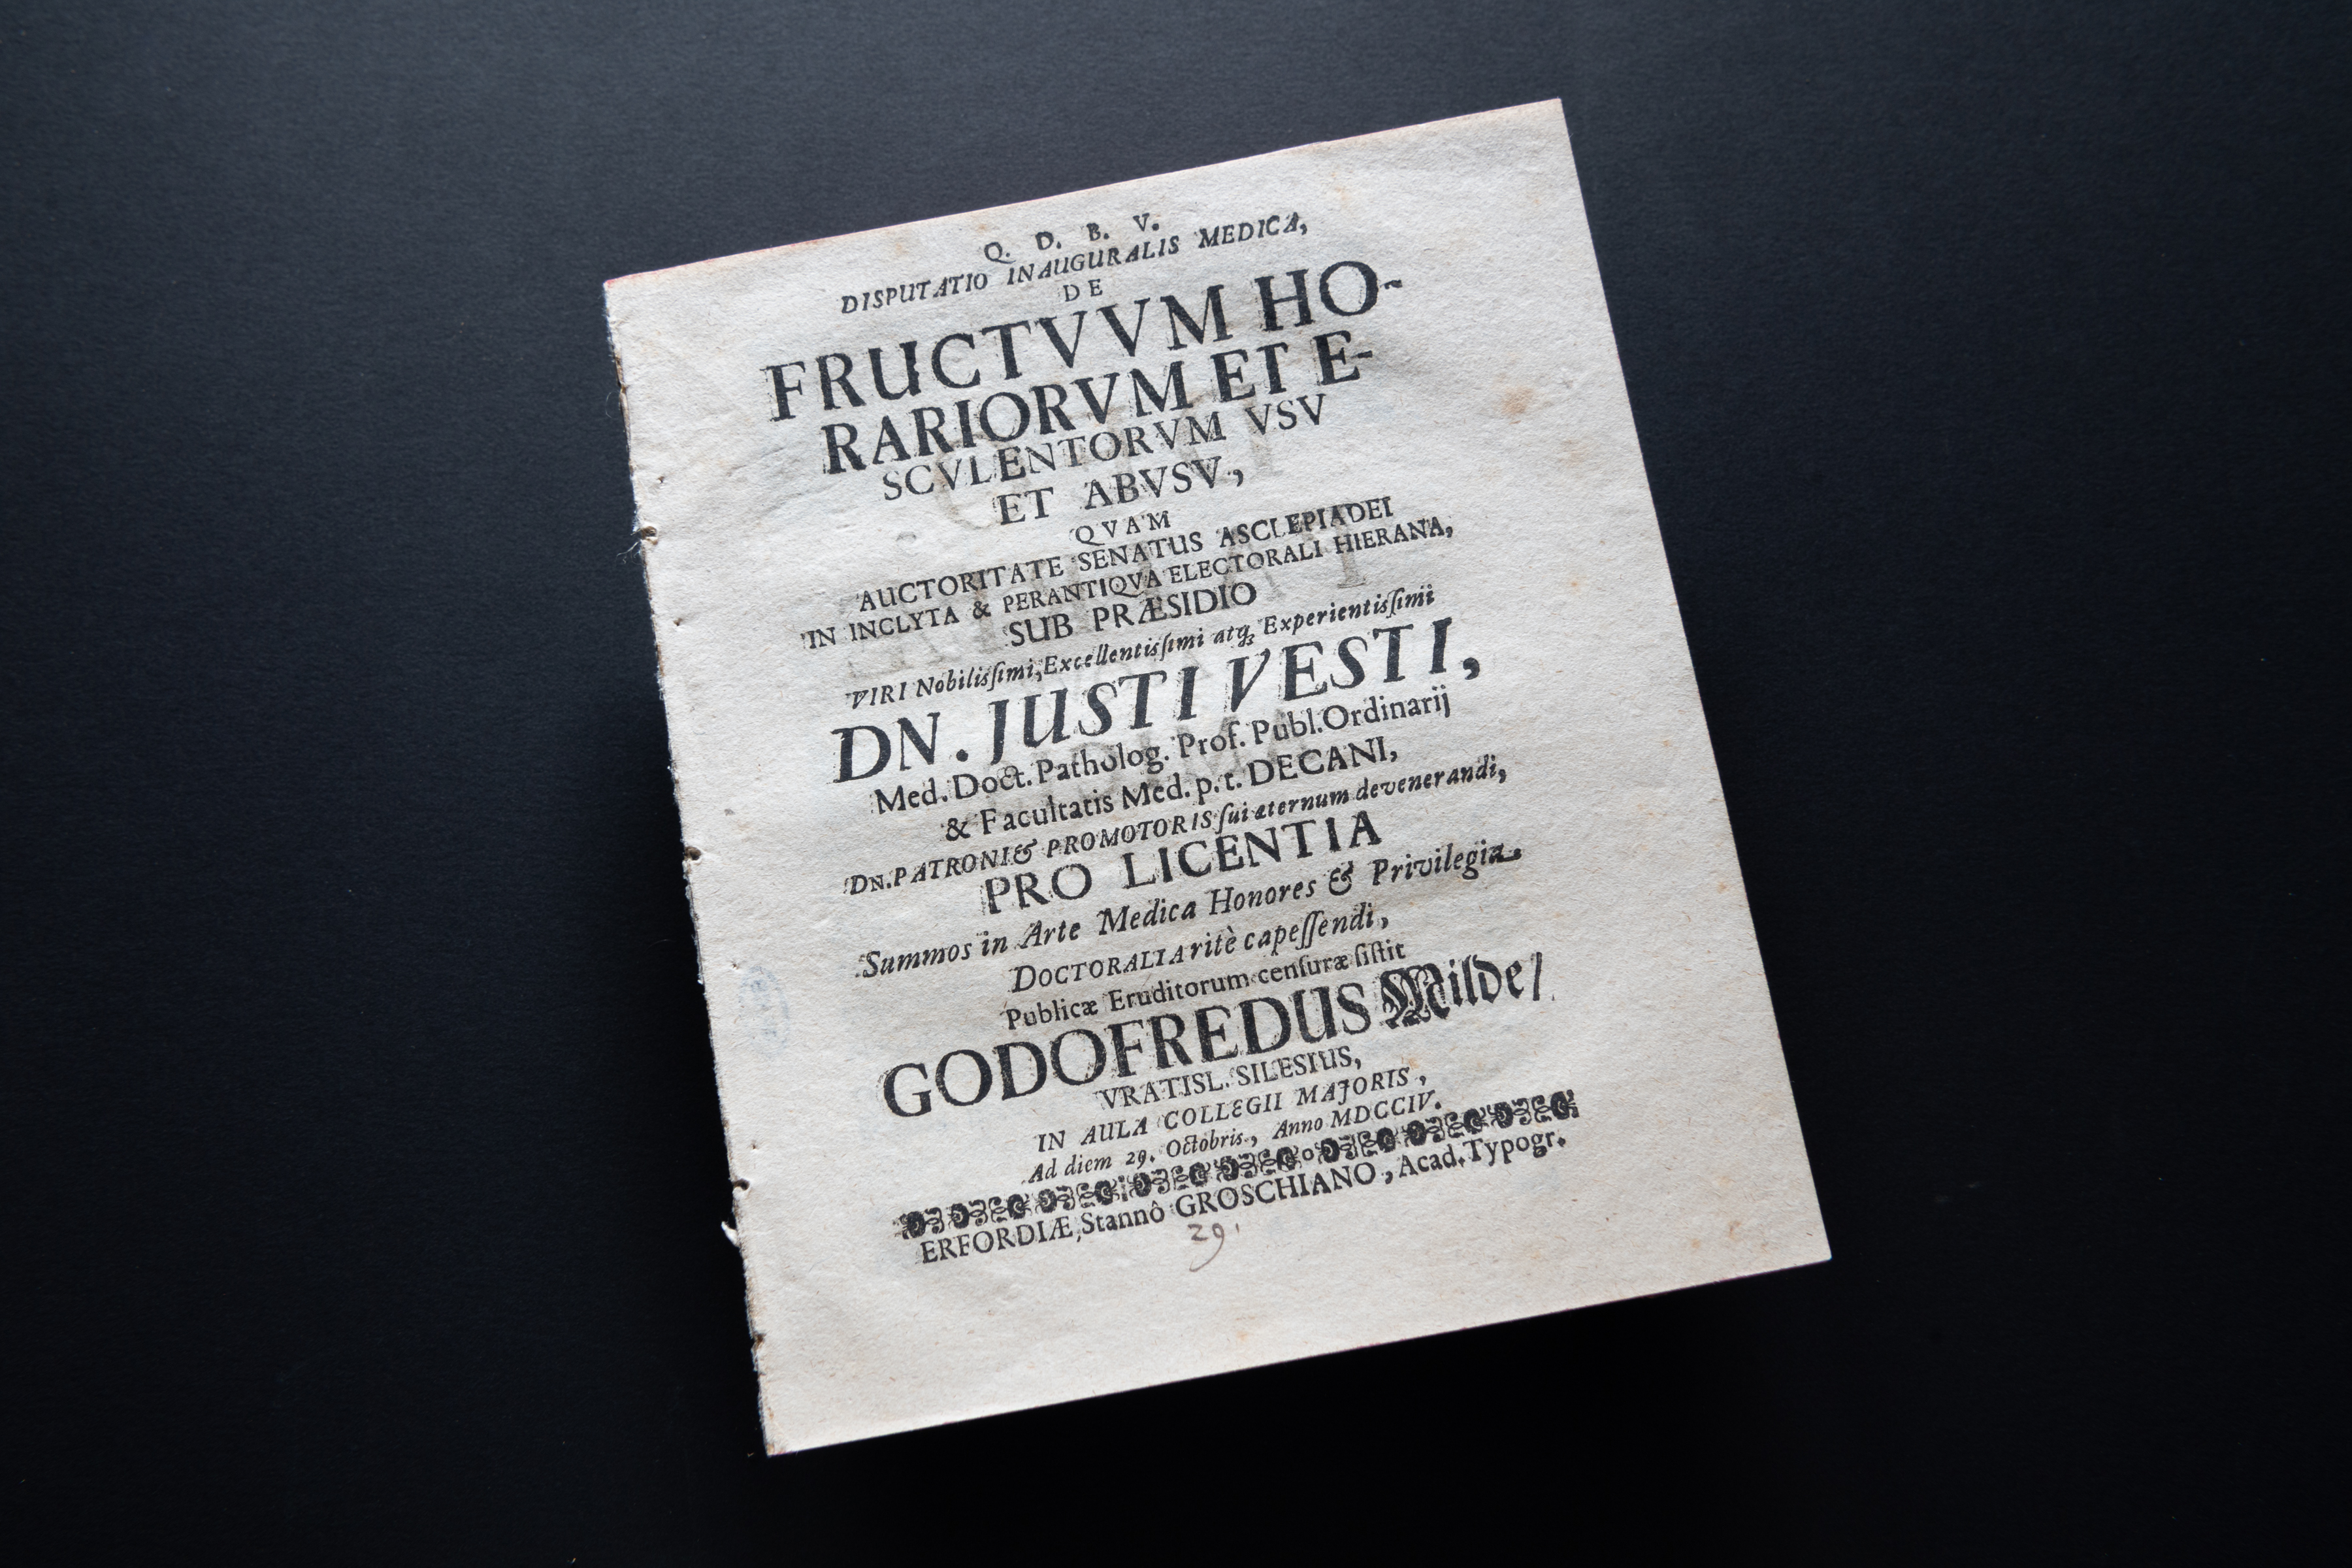 Detail of a printed book shows a title page with text in Latin.